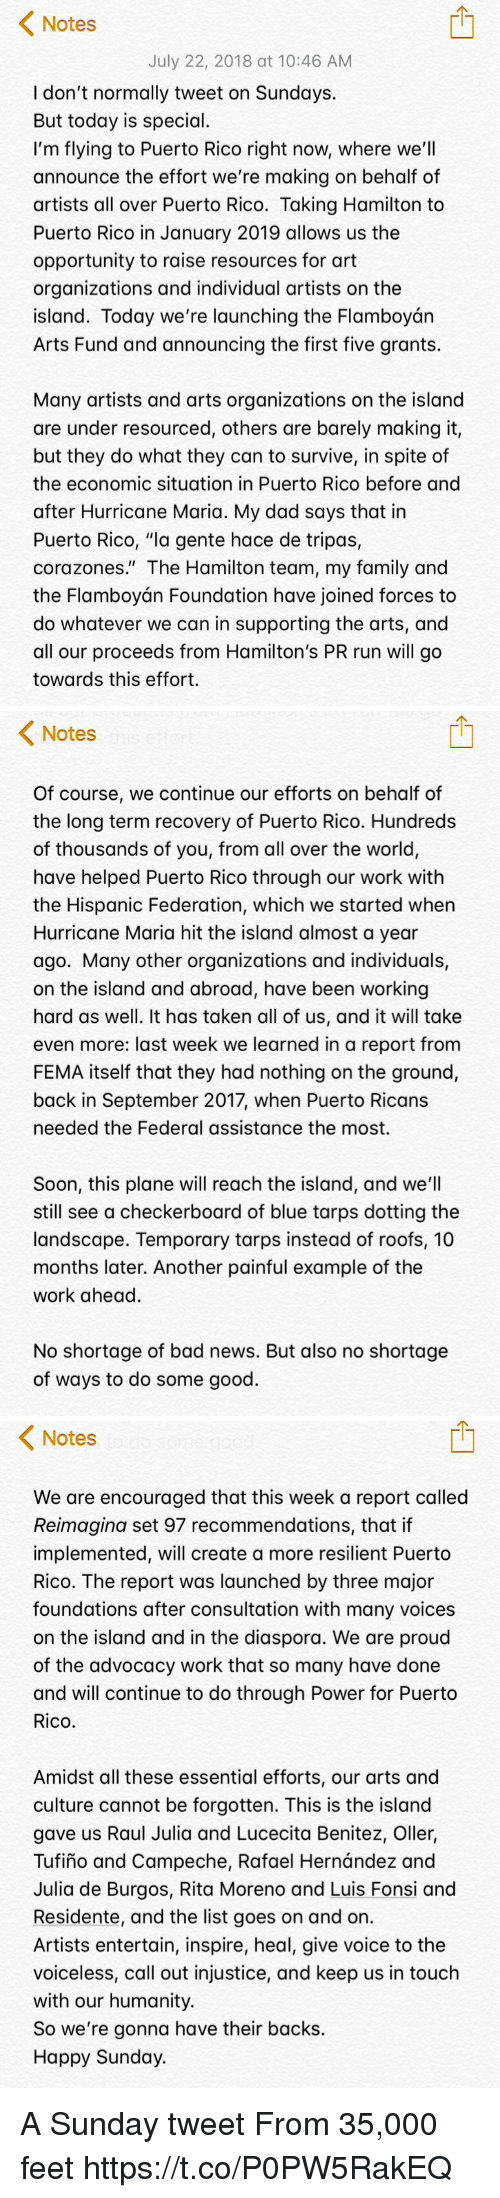 """Bad, Dad, and Family: Notes  July 22, 2018 at 10:46 AM  I don't normally tweet on Sundays.  But today is special.  I'm flying to Puerto Rico right now, where we'll  announce the effort we're making on behalf of  artists all over Puerto Rico. Taking Hamilton to  Puerto Rico in January 2019 allows us the  opportunity to raise resources for art  organizations and individual artists on the  island. Today we're launching the Flamboyán  Arts Fund and announcing the first five grants.  Many artists and arts organizations on the island  are under resourced, others are barely making it,  but they do what they can to survive, in spite of  the economic situation in Puerto Rico before and  after Hurricane Maria. My dad says that in  Puerto Rico, """"la gente hace de tripas,  corazones."""" The Hamilton team, my family and  the Flamboyán Foundation have joined forces to  do whatever we can in supporting the arts, and  all our proceeds from Hamilton's PR run will go  towards this effort.   Notes  Of course, we continue our efforts on behalf of  the long term recovery of Puerto Rico. Hundreds  of thousands of you, from all over the world,  have helped Puerto Rico through our work with  the Hispanic Federation, which we started when  Hurricane Maria hit the island almost a year  ago. Many other organizations and individuals,  on the island and abroad, have been working  hard as well. It has taken all of us, and it will take  even more: last week we learned in a report from  FEMA itself that they had nothing on the ground,  back in September 2017, when Puerto Ricans  needed the Federal assistance the most.  Soon, this plane will reach the island, and we'll  still see a checkerboard of blue tarps dotting the  landscape. Temporary tarps instead of roofs, 10  months later. Another painful example of the  work ahead.  No shortage of bad news. But also no shortage  of ways to do some good.   < Notes  We are encouraged that this week a report called  Reimagina set 97 recommendations, that if  i"""